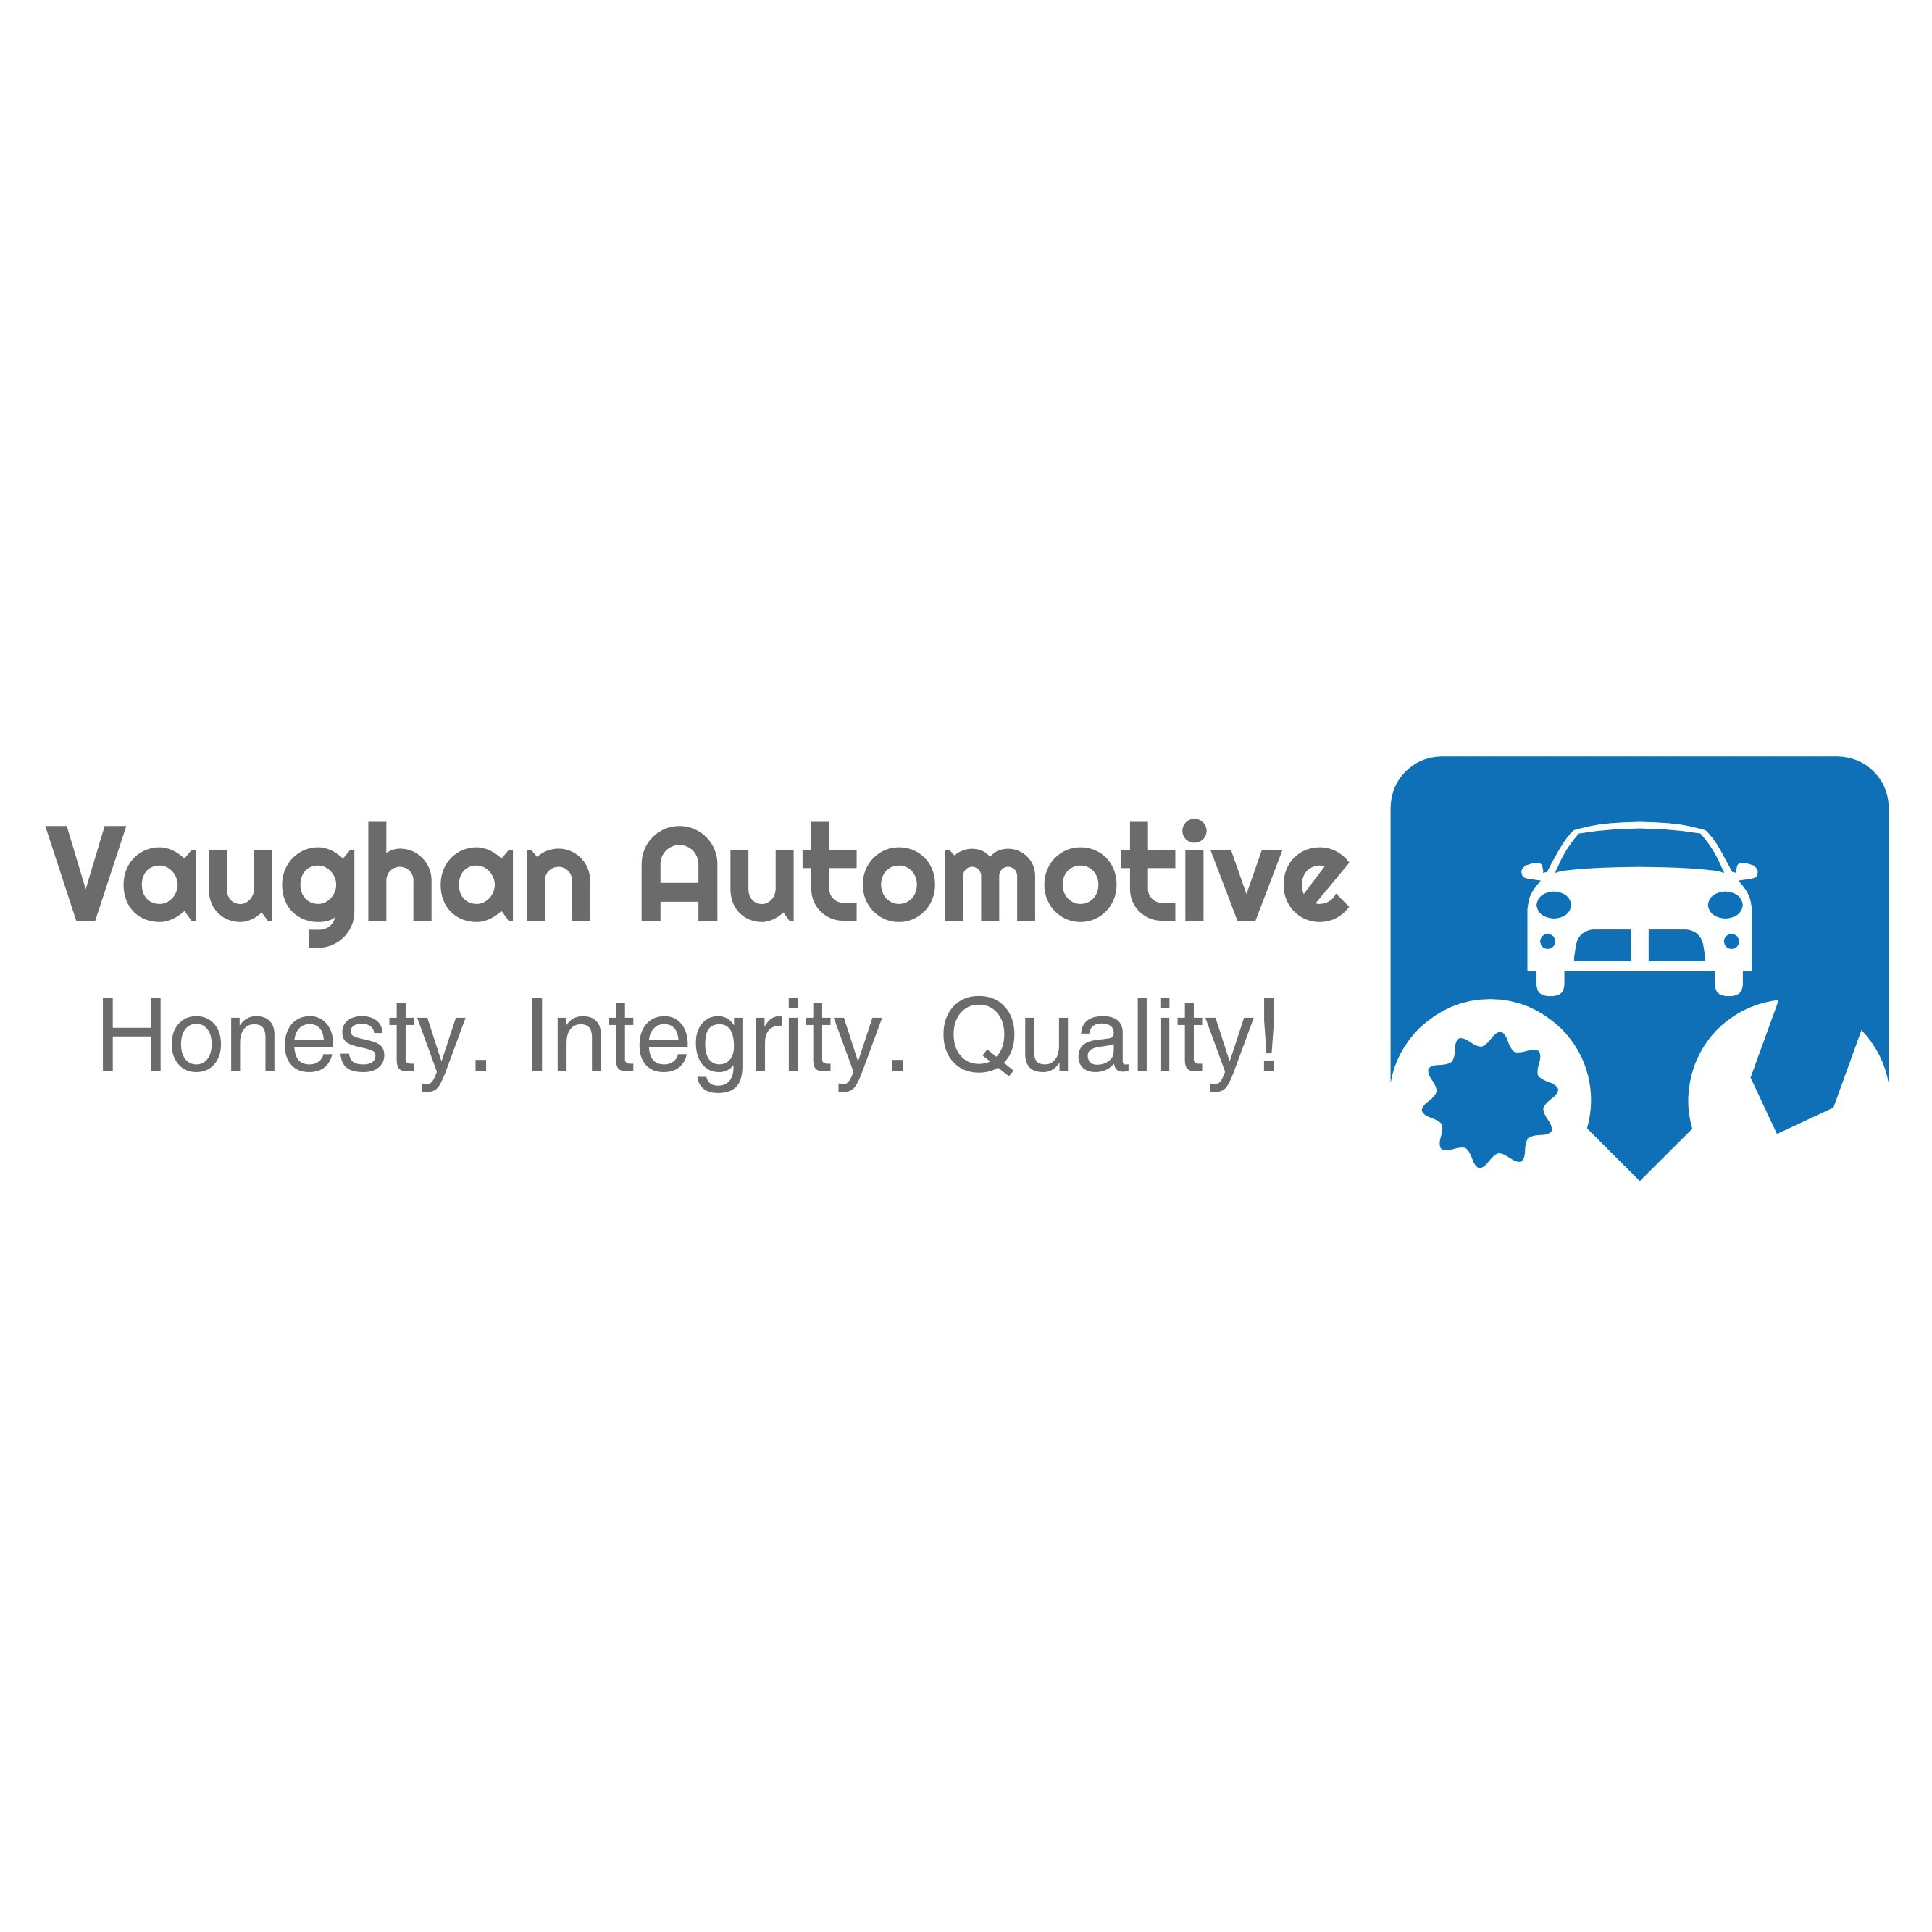 Vaughan Automotive